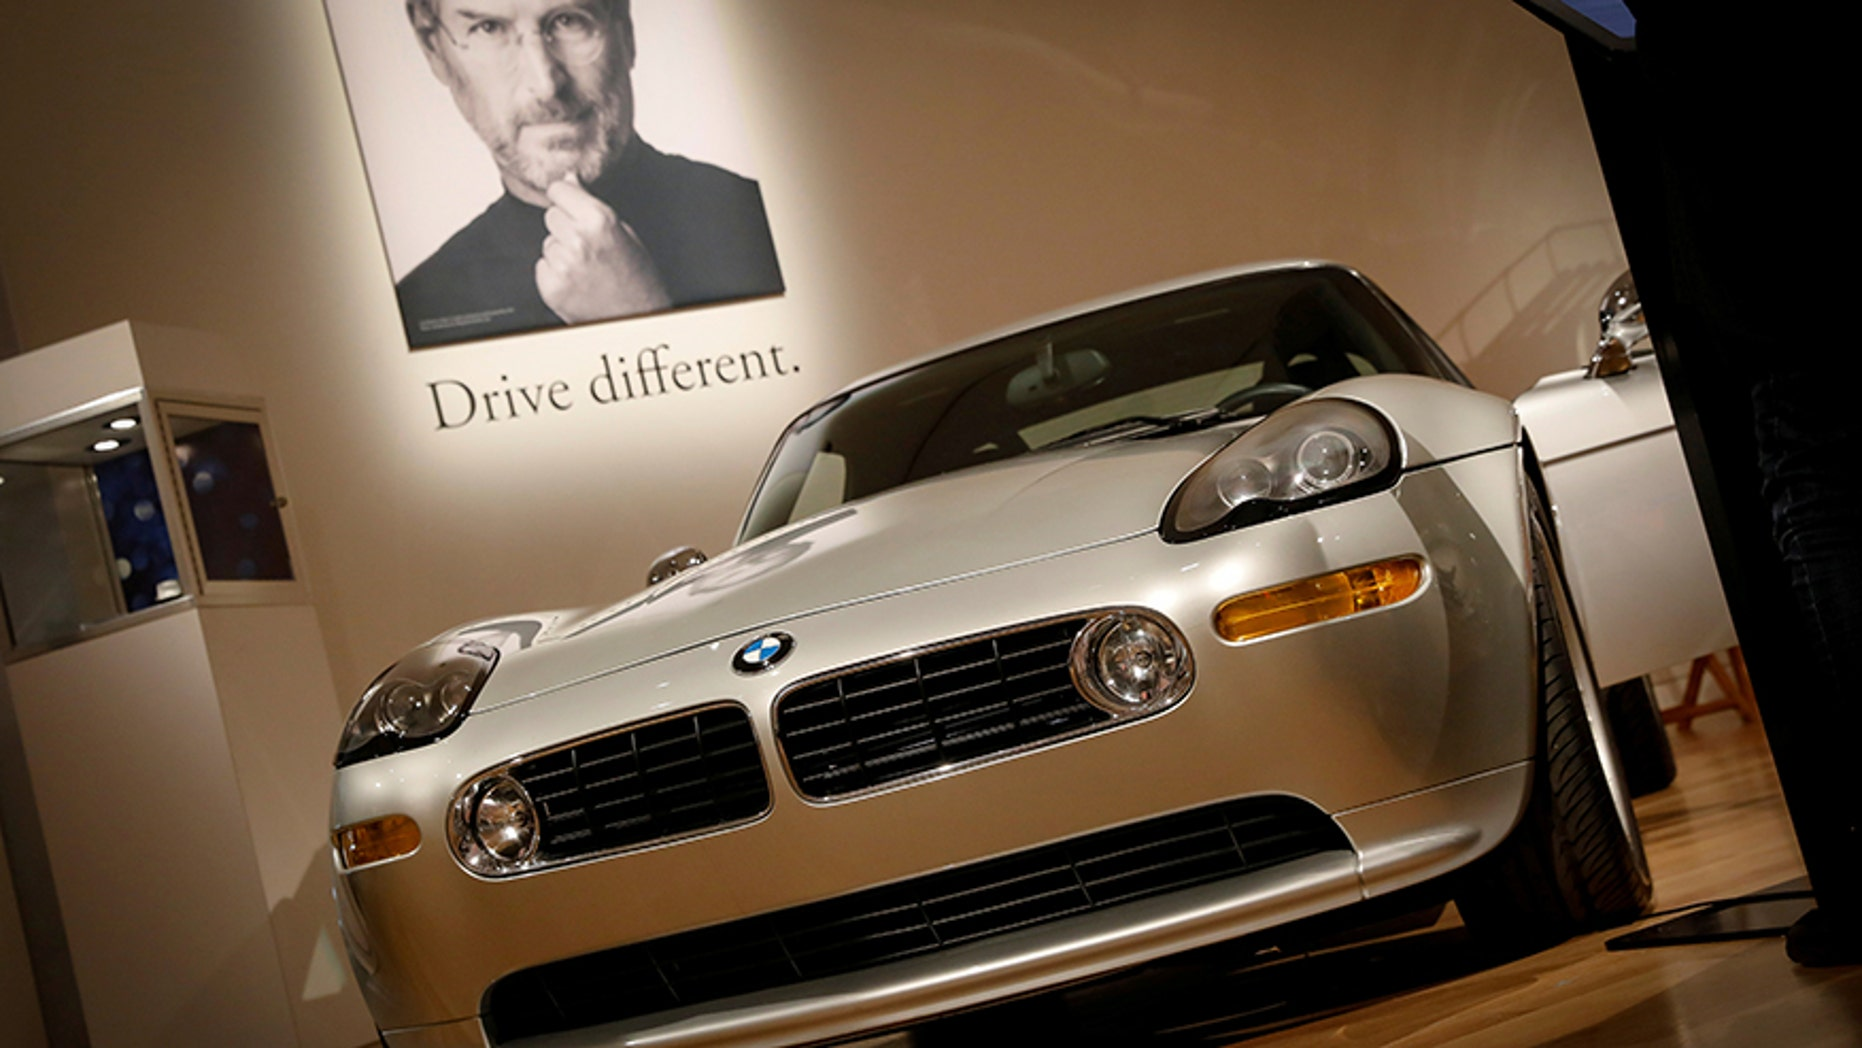 A 2000 BMW Z8 owned by Apple Founder Steve Jobs is displayed during a media preview for the 'RM Sotheby's Icons' sale at Sotheby's in New York, U.S., November 30, 2017. REUTERS/Brendan McDermid     TPX IMAGES OF THE DAY - RC1DE39368B0